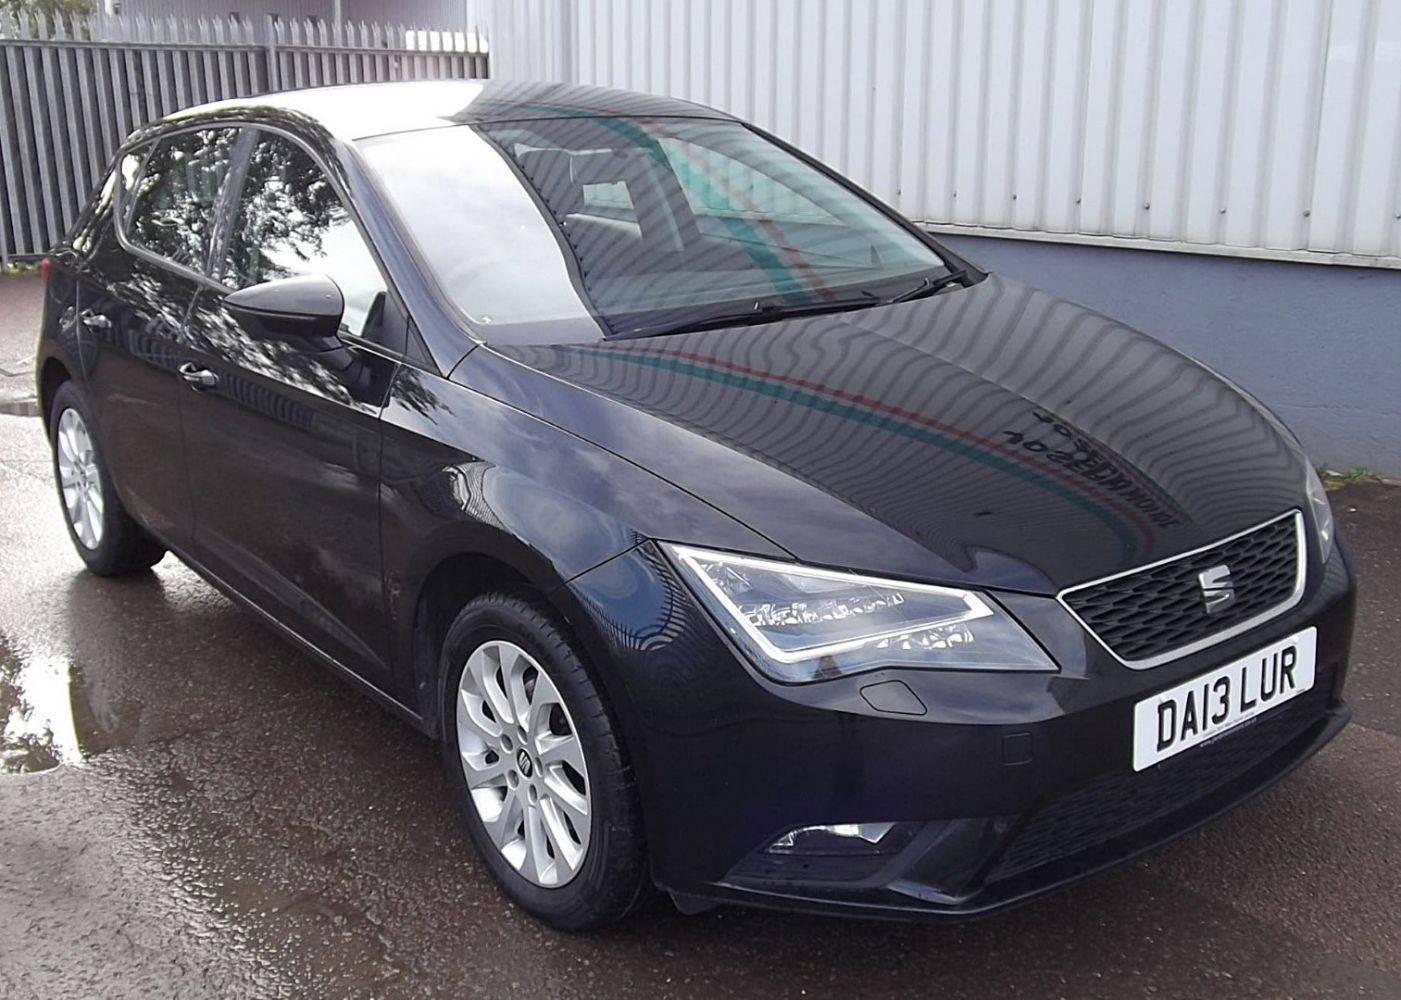 Monday 21st From 2pm: Vehicle Auction Featuring Vans, Cars and Bikes